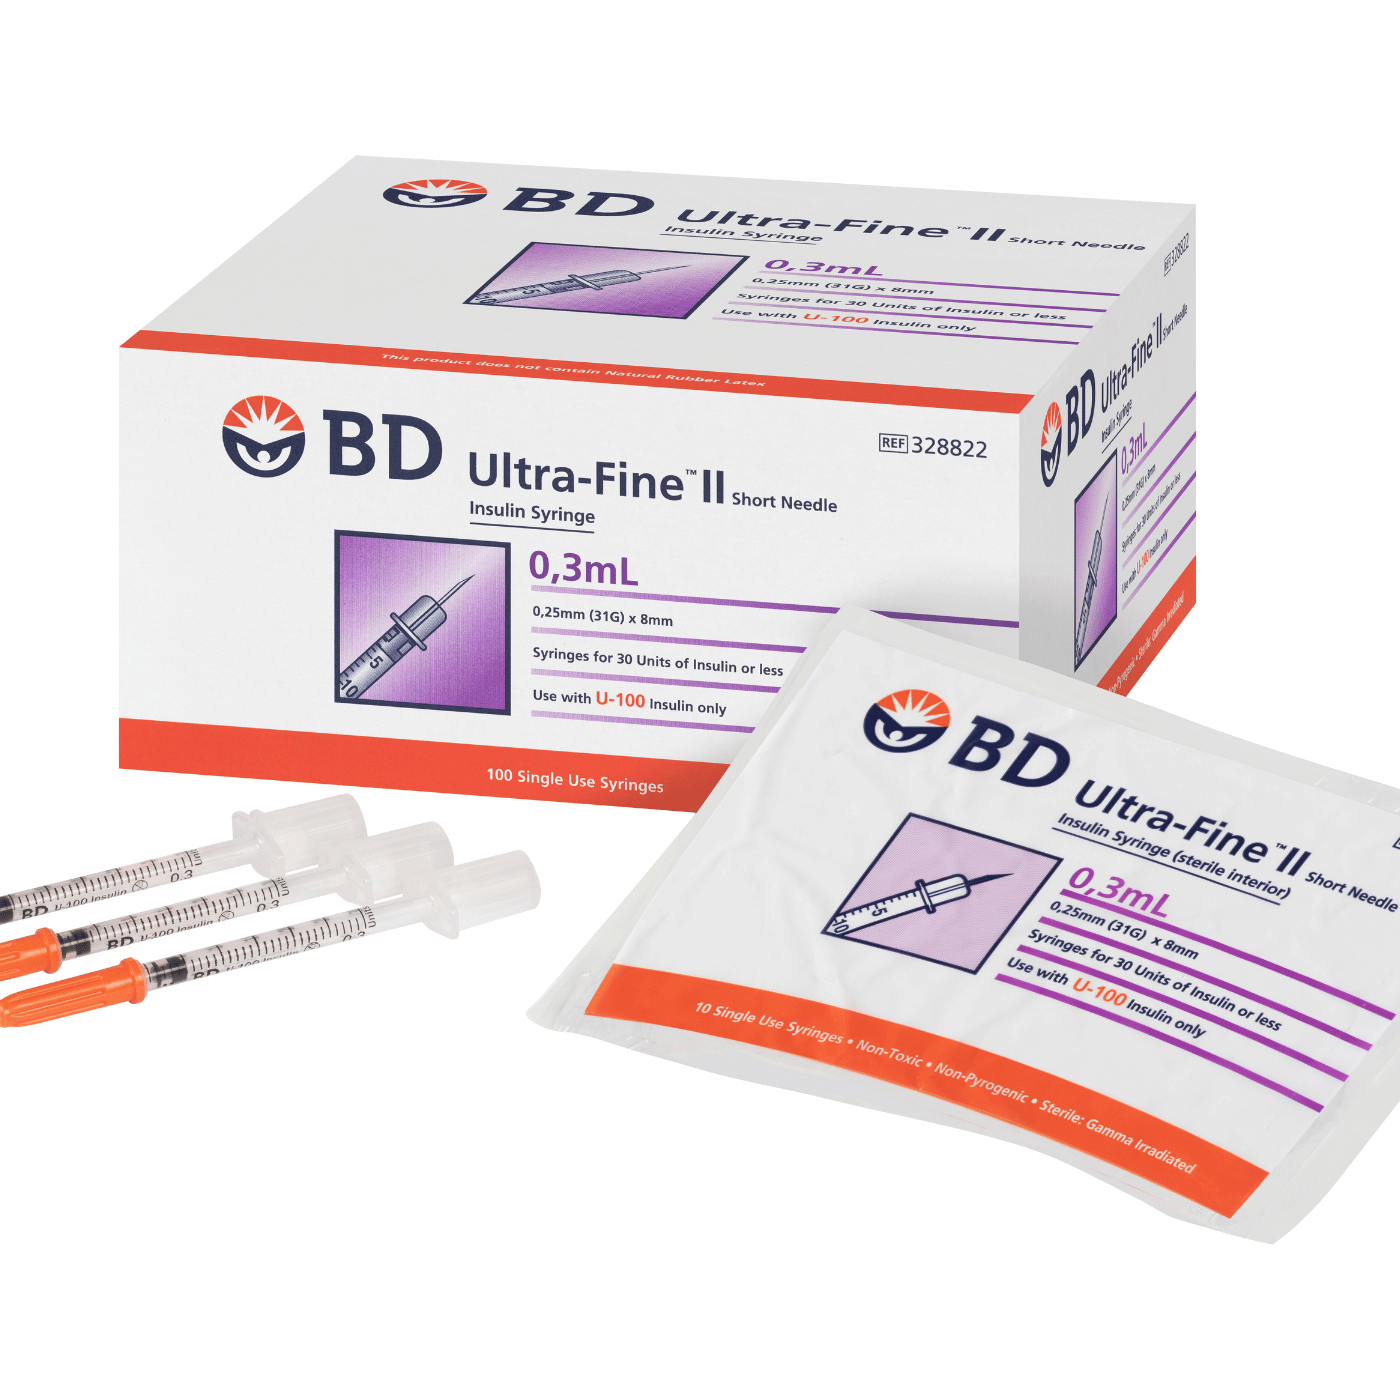 0.3mL_BD_Ultra-Fine_II_Short_Needle_Insulin_Syringe|A Pack Of 100 BD Ultra-Fine II Syringes And Needle